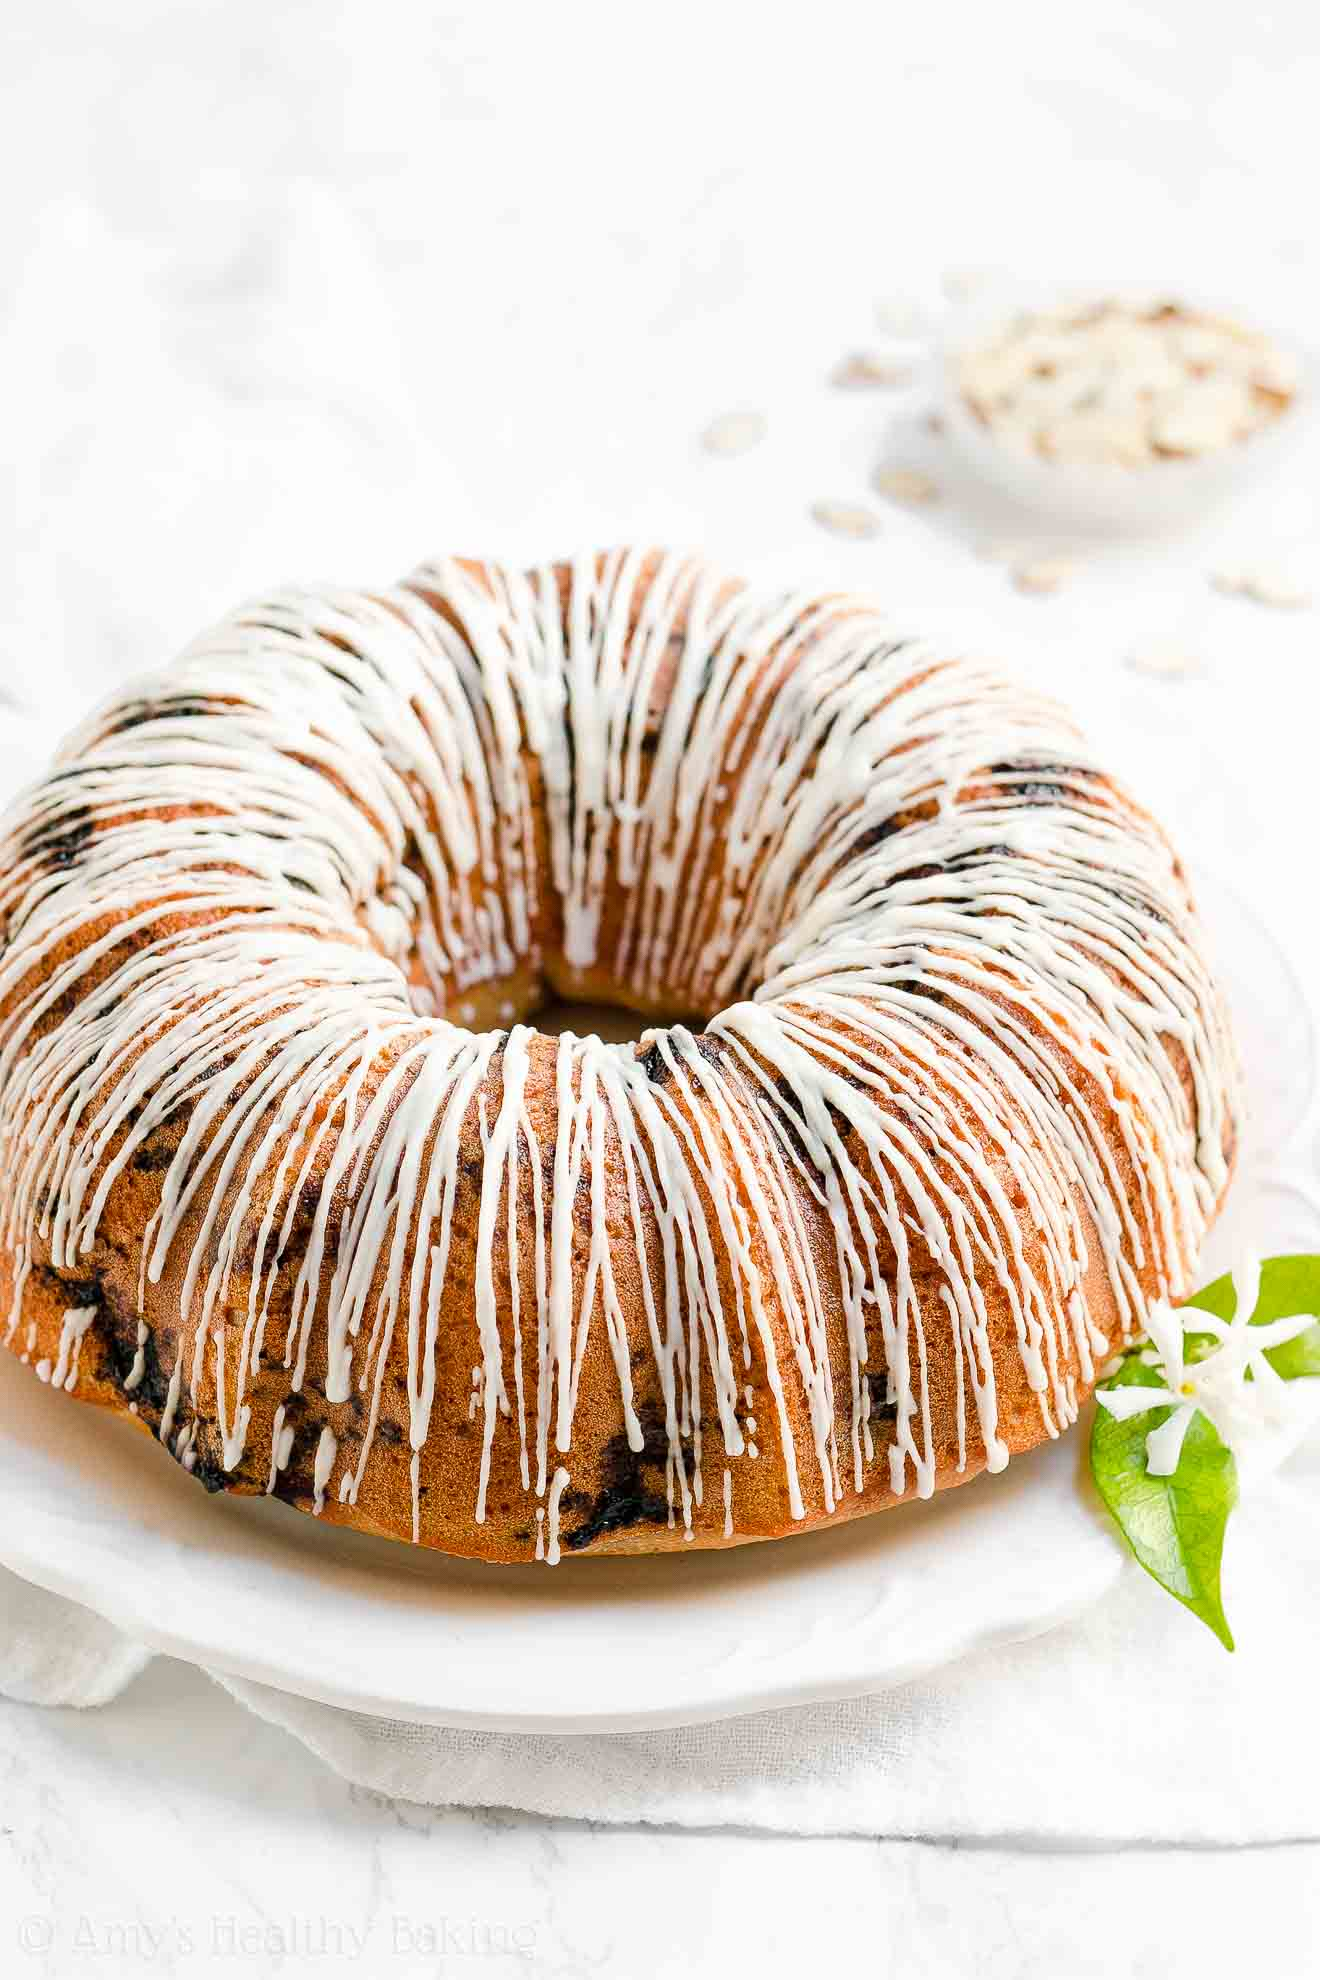 Easy Healthy Blueberry Almond Bundt Cake with Weight Watchers Points